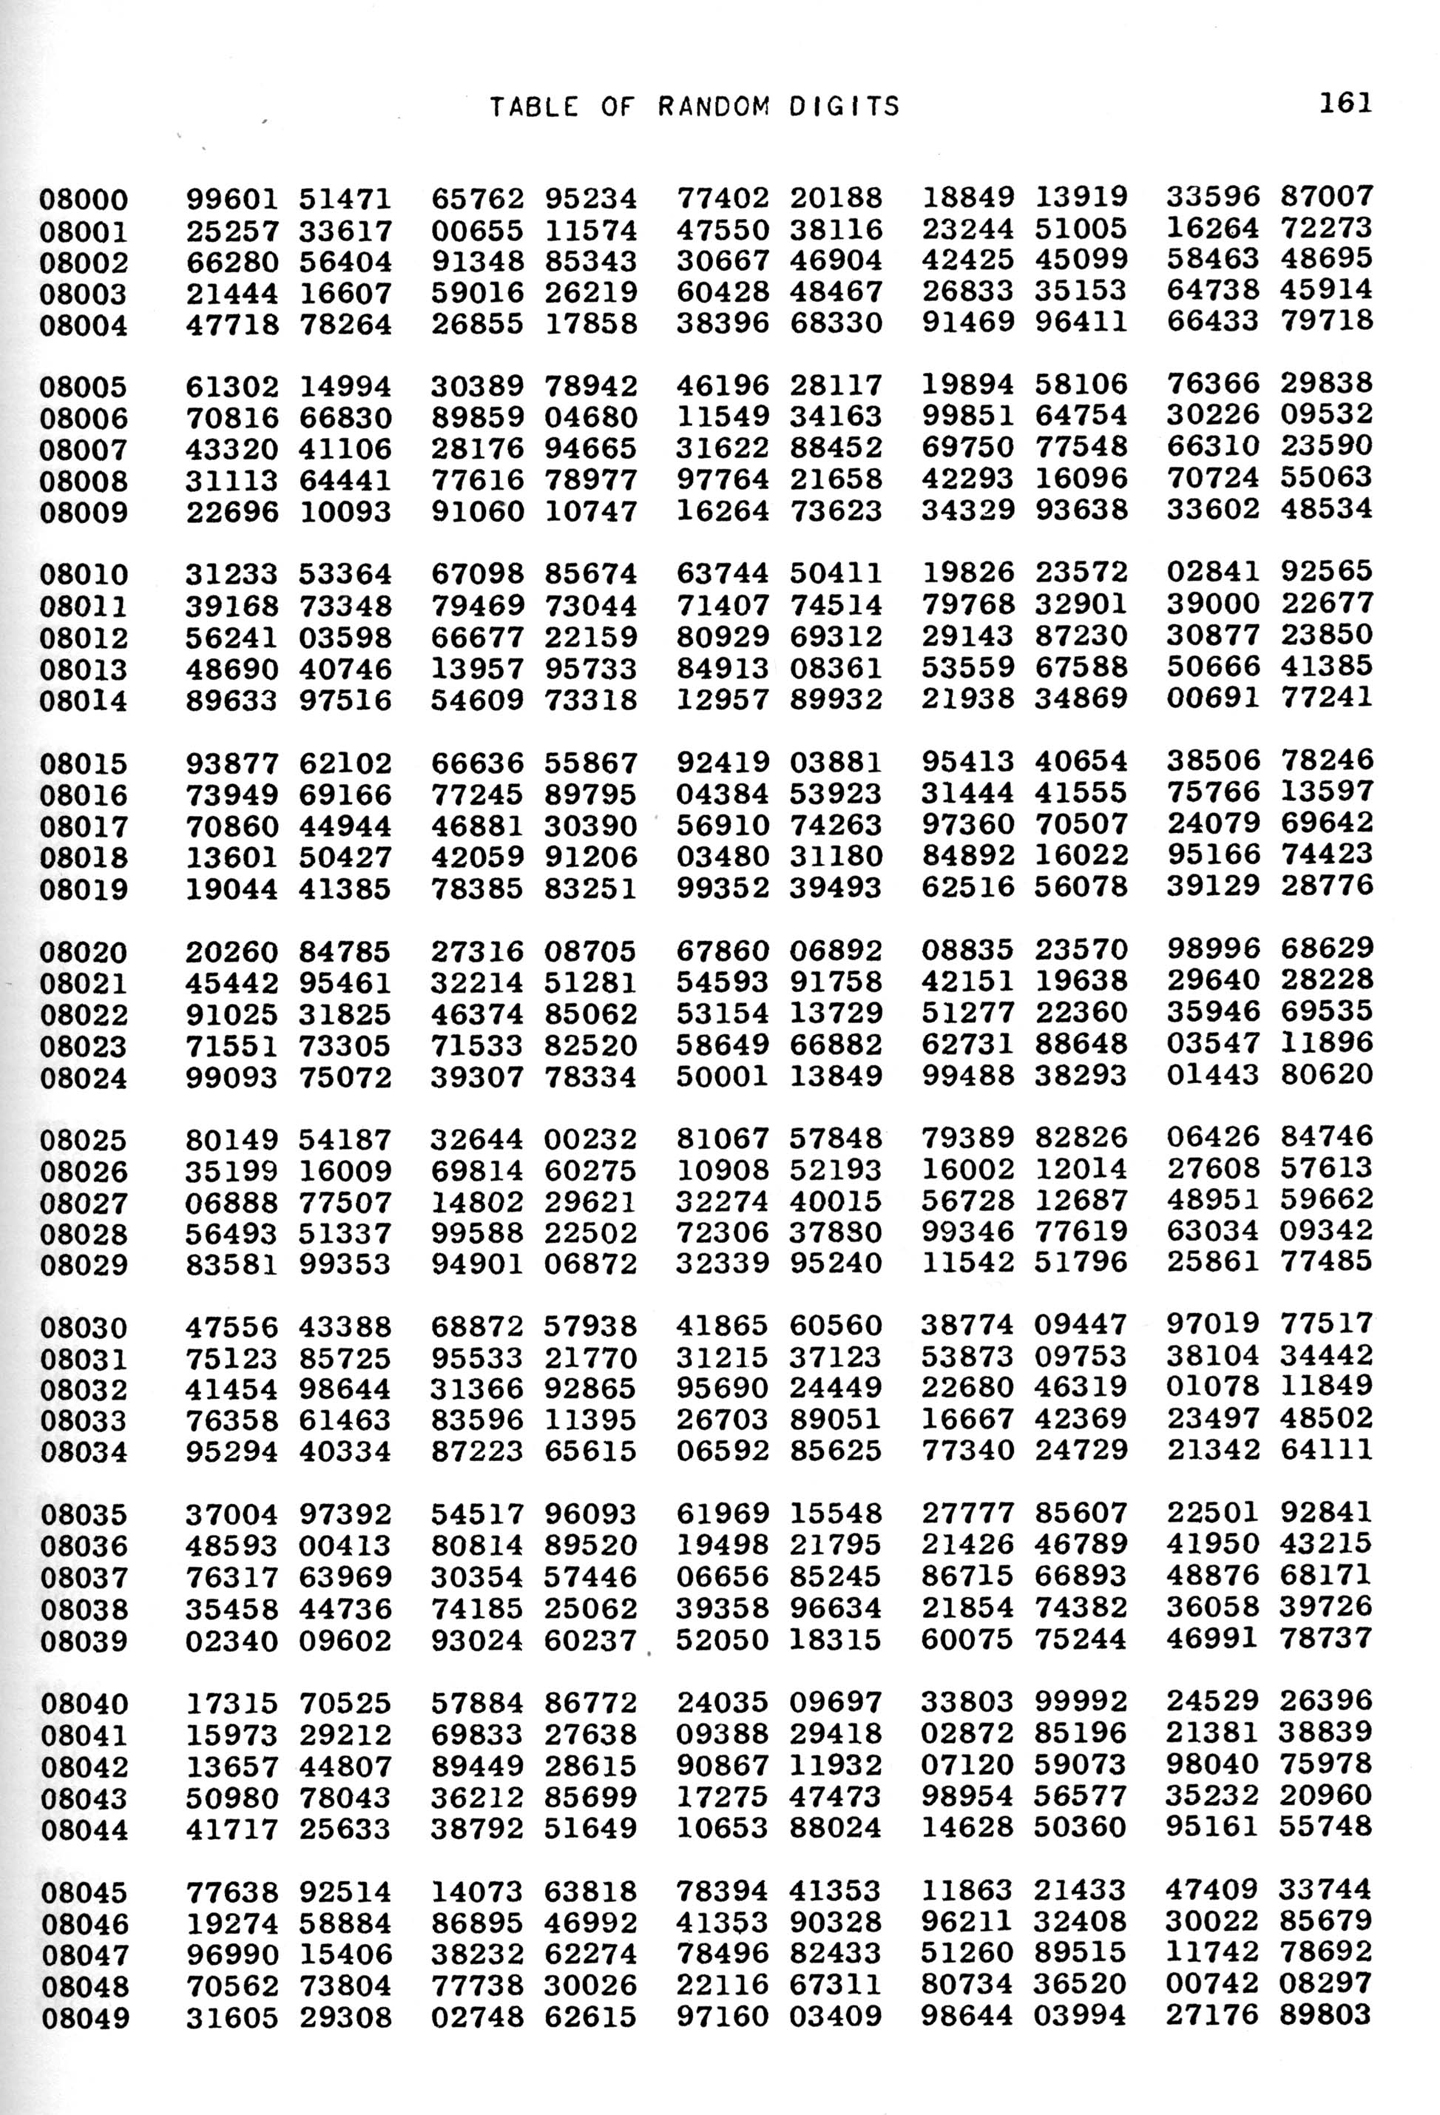 The RAND Corporation, A Million Random Digits with 100,000 Normal Deviates (Santa Monica: RAND Corporation, 1955)